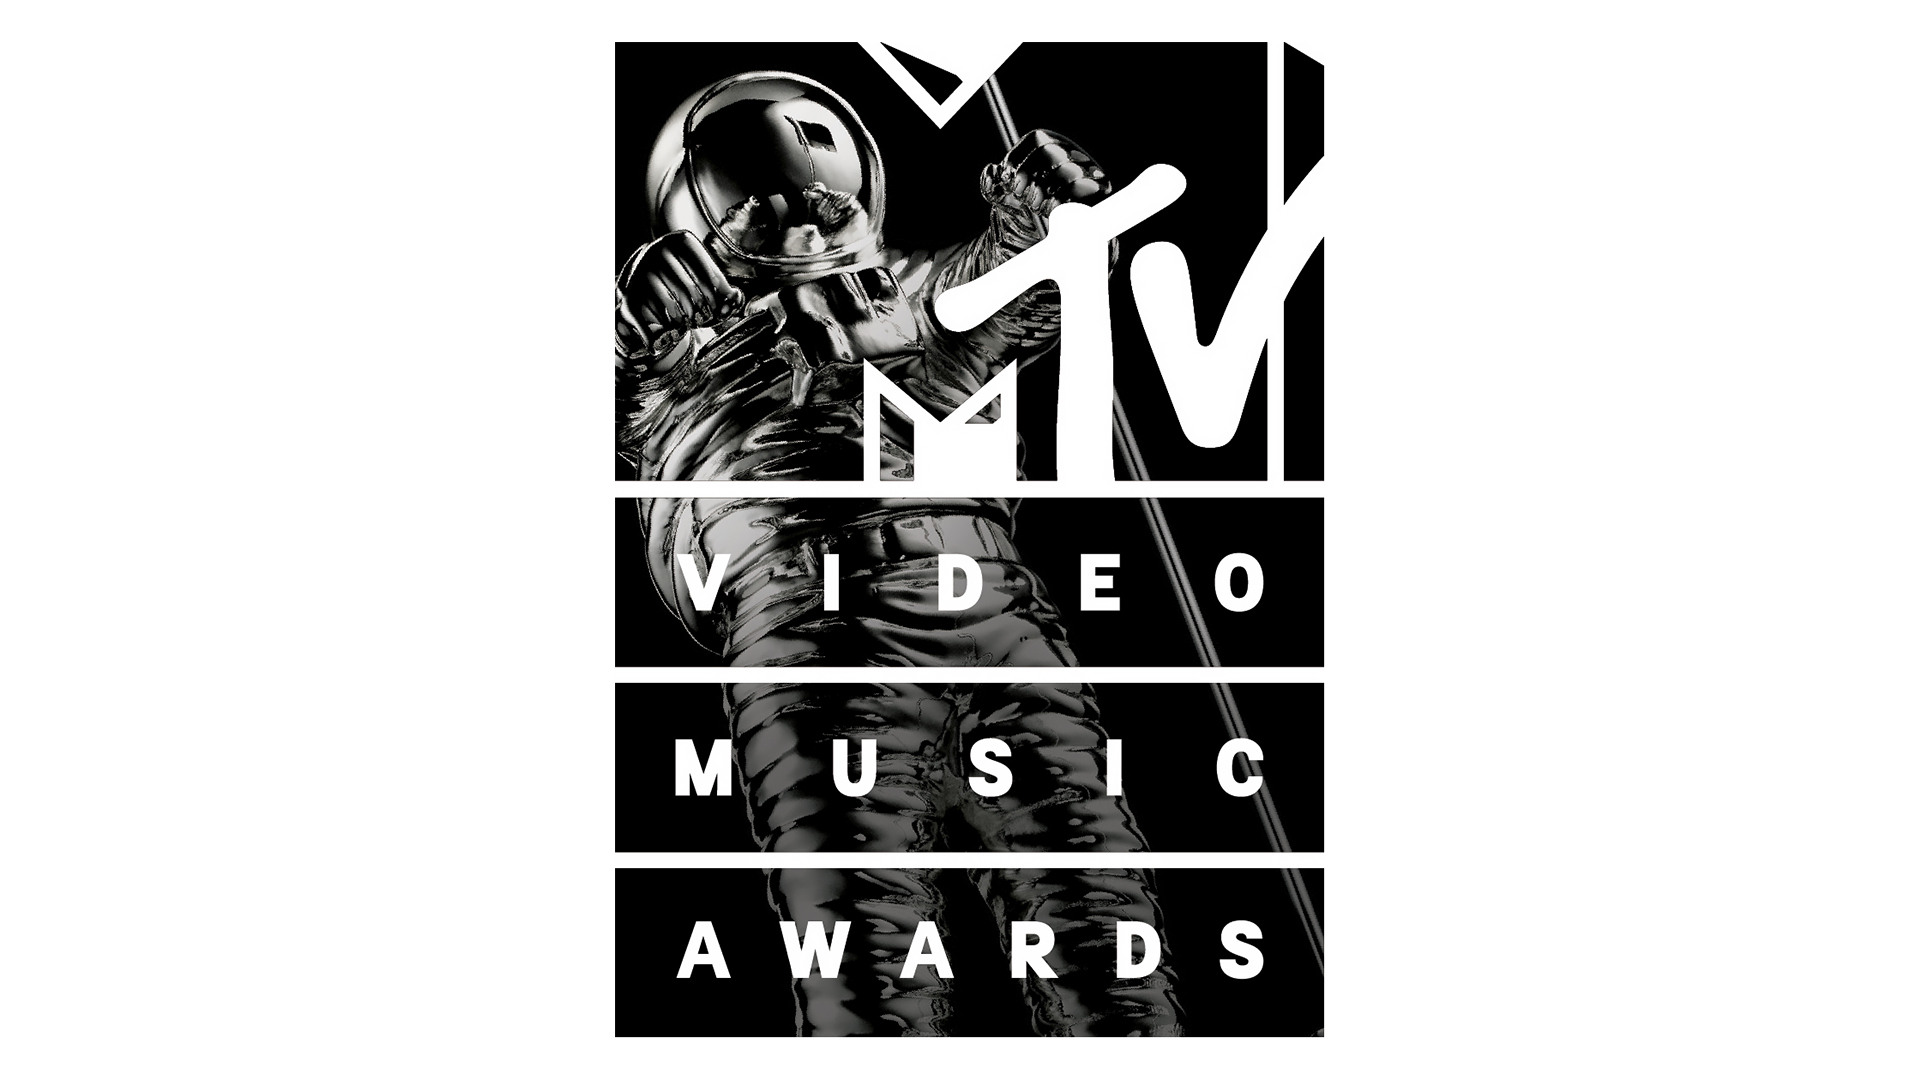 MTV VIDEO MUSIC AWARDS - WHO WILL WIN VIDEO OF THE YEAR?